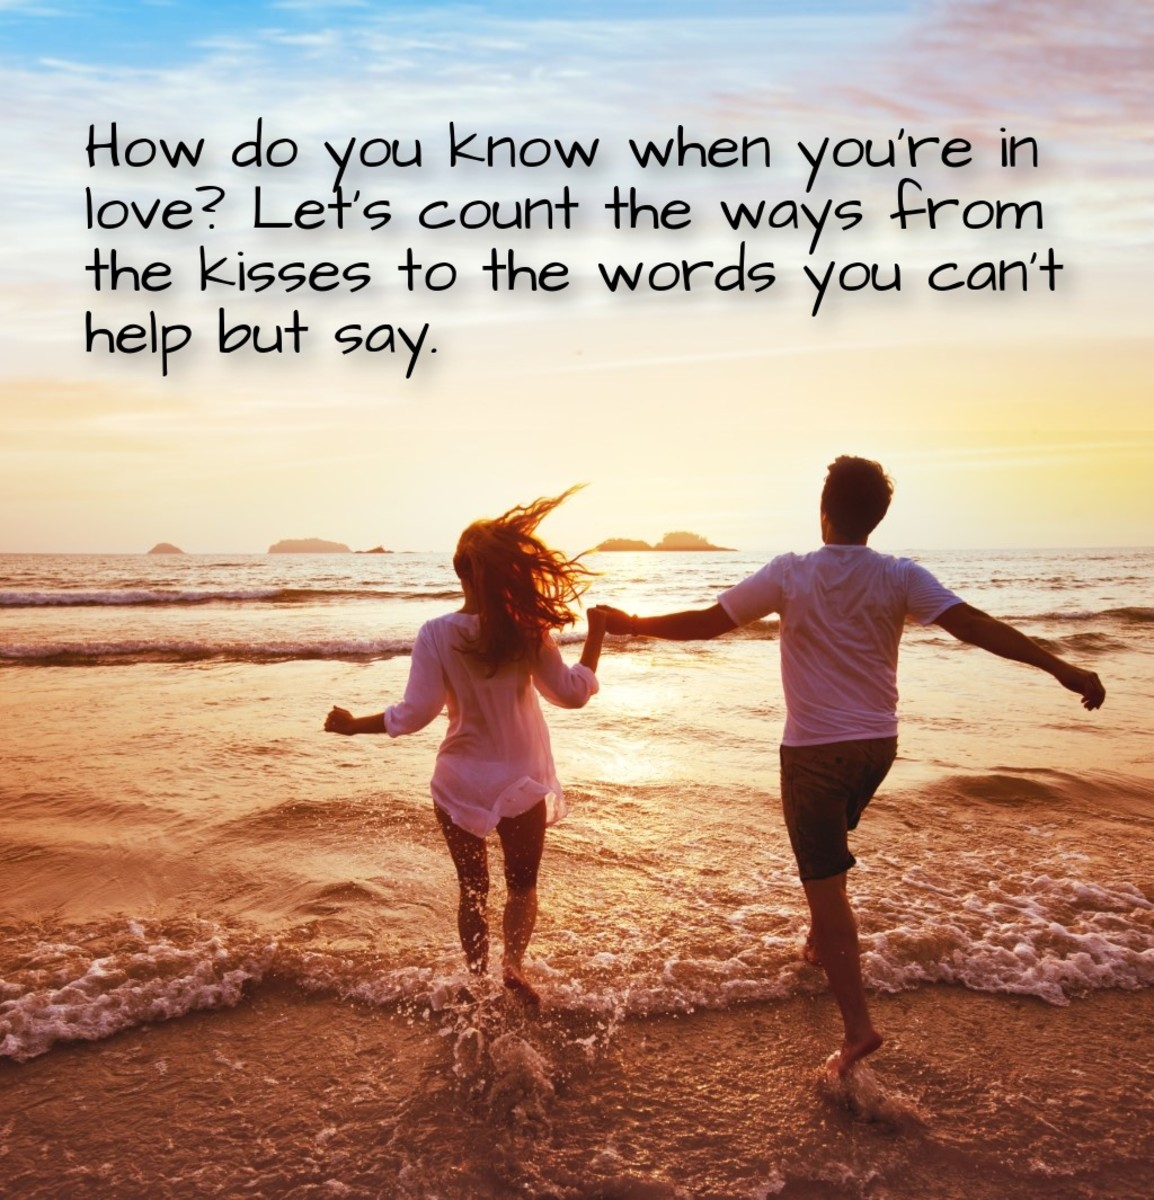 How Do You Know If You're in Love? Getting to Know Your Heart